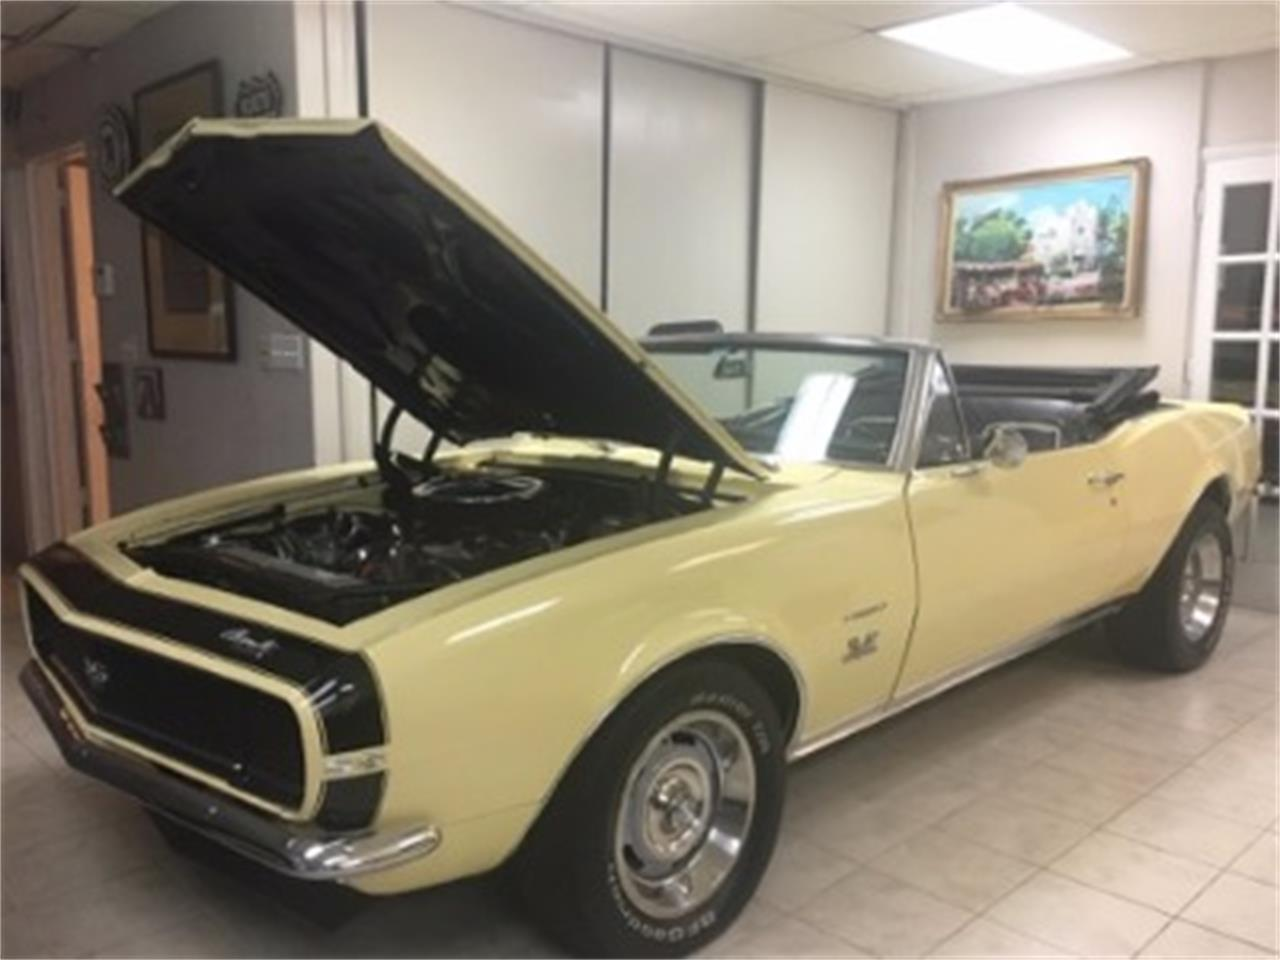 For Sale: 1967 Chevrolet Camaro in Miami, Florida